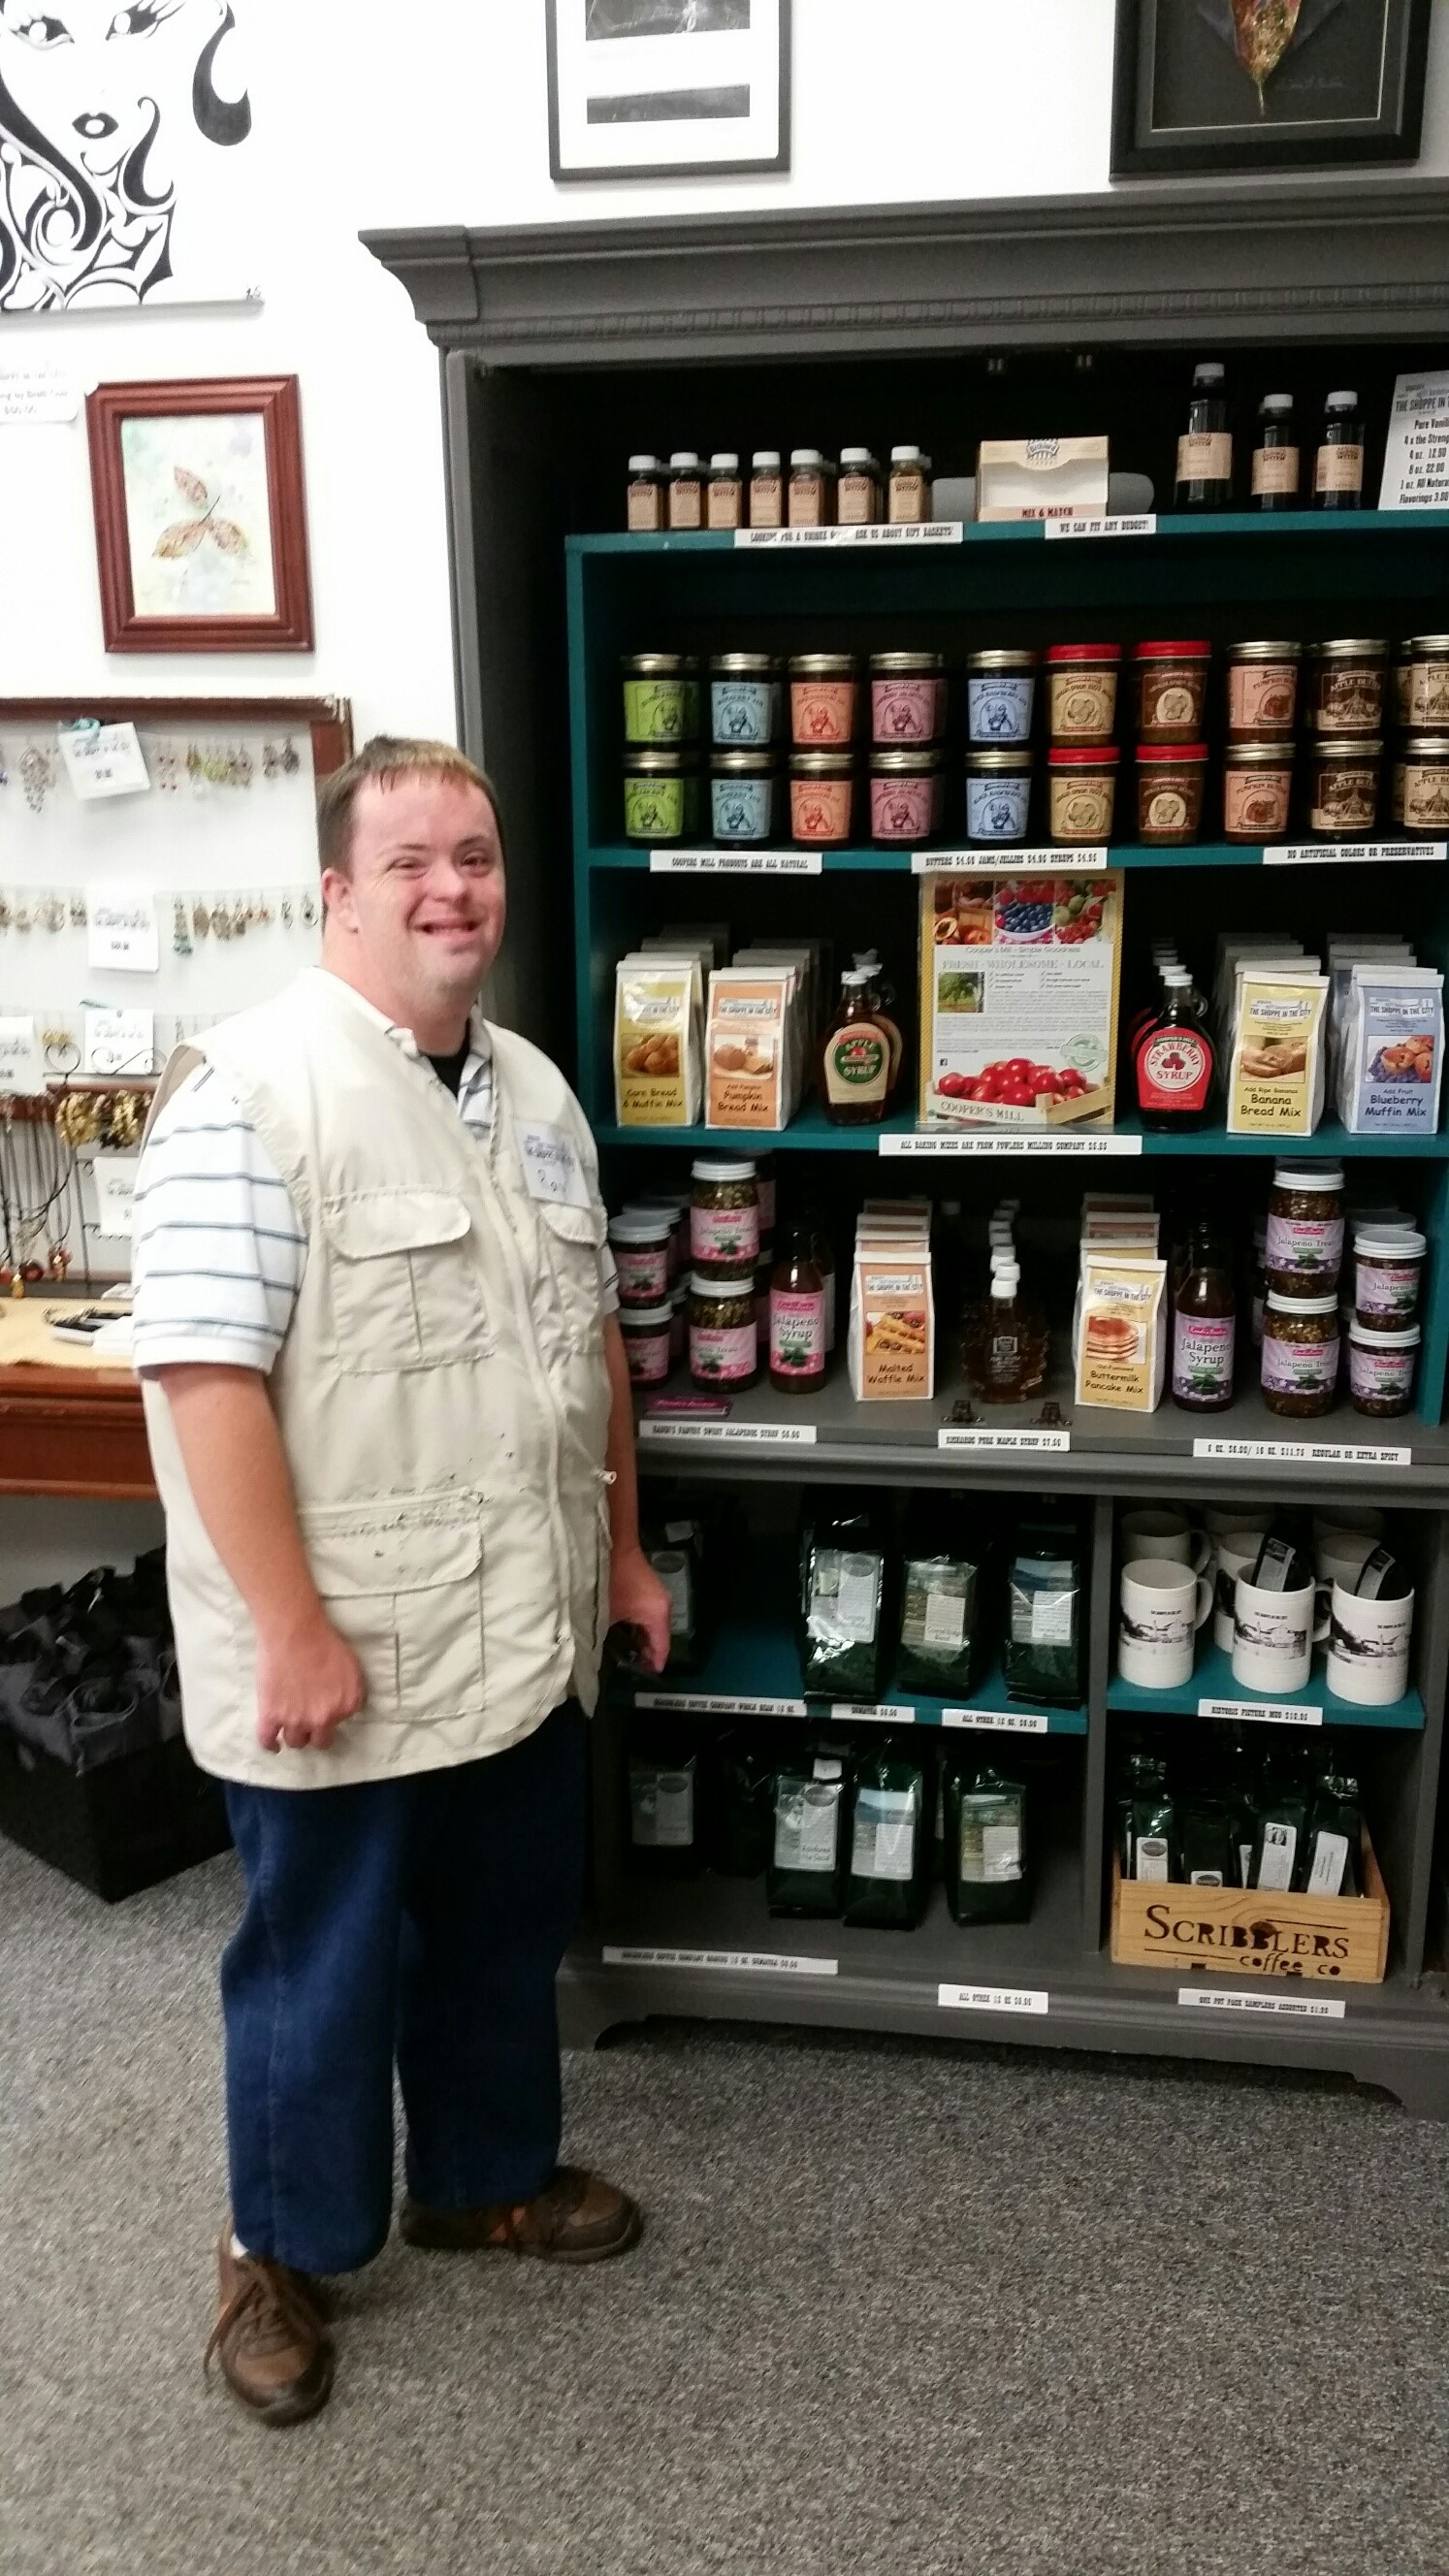 Ray standing by the Coopers display at the Shoppe